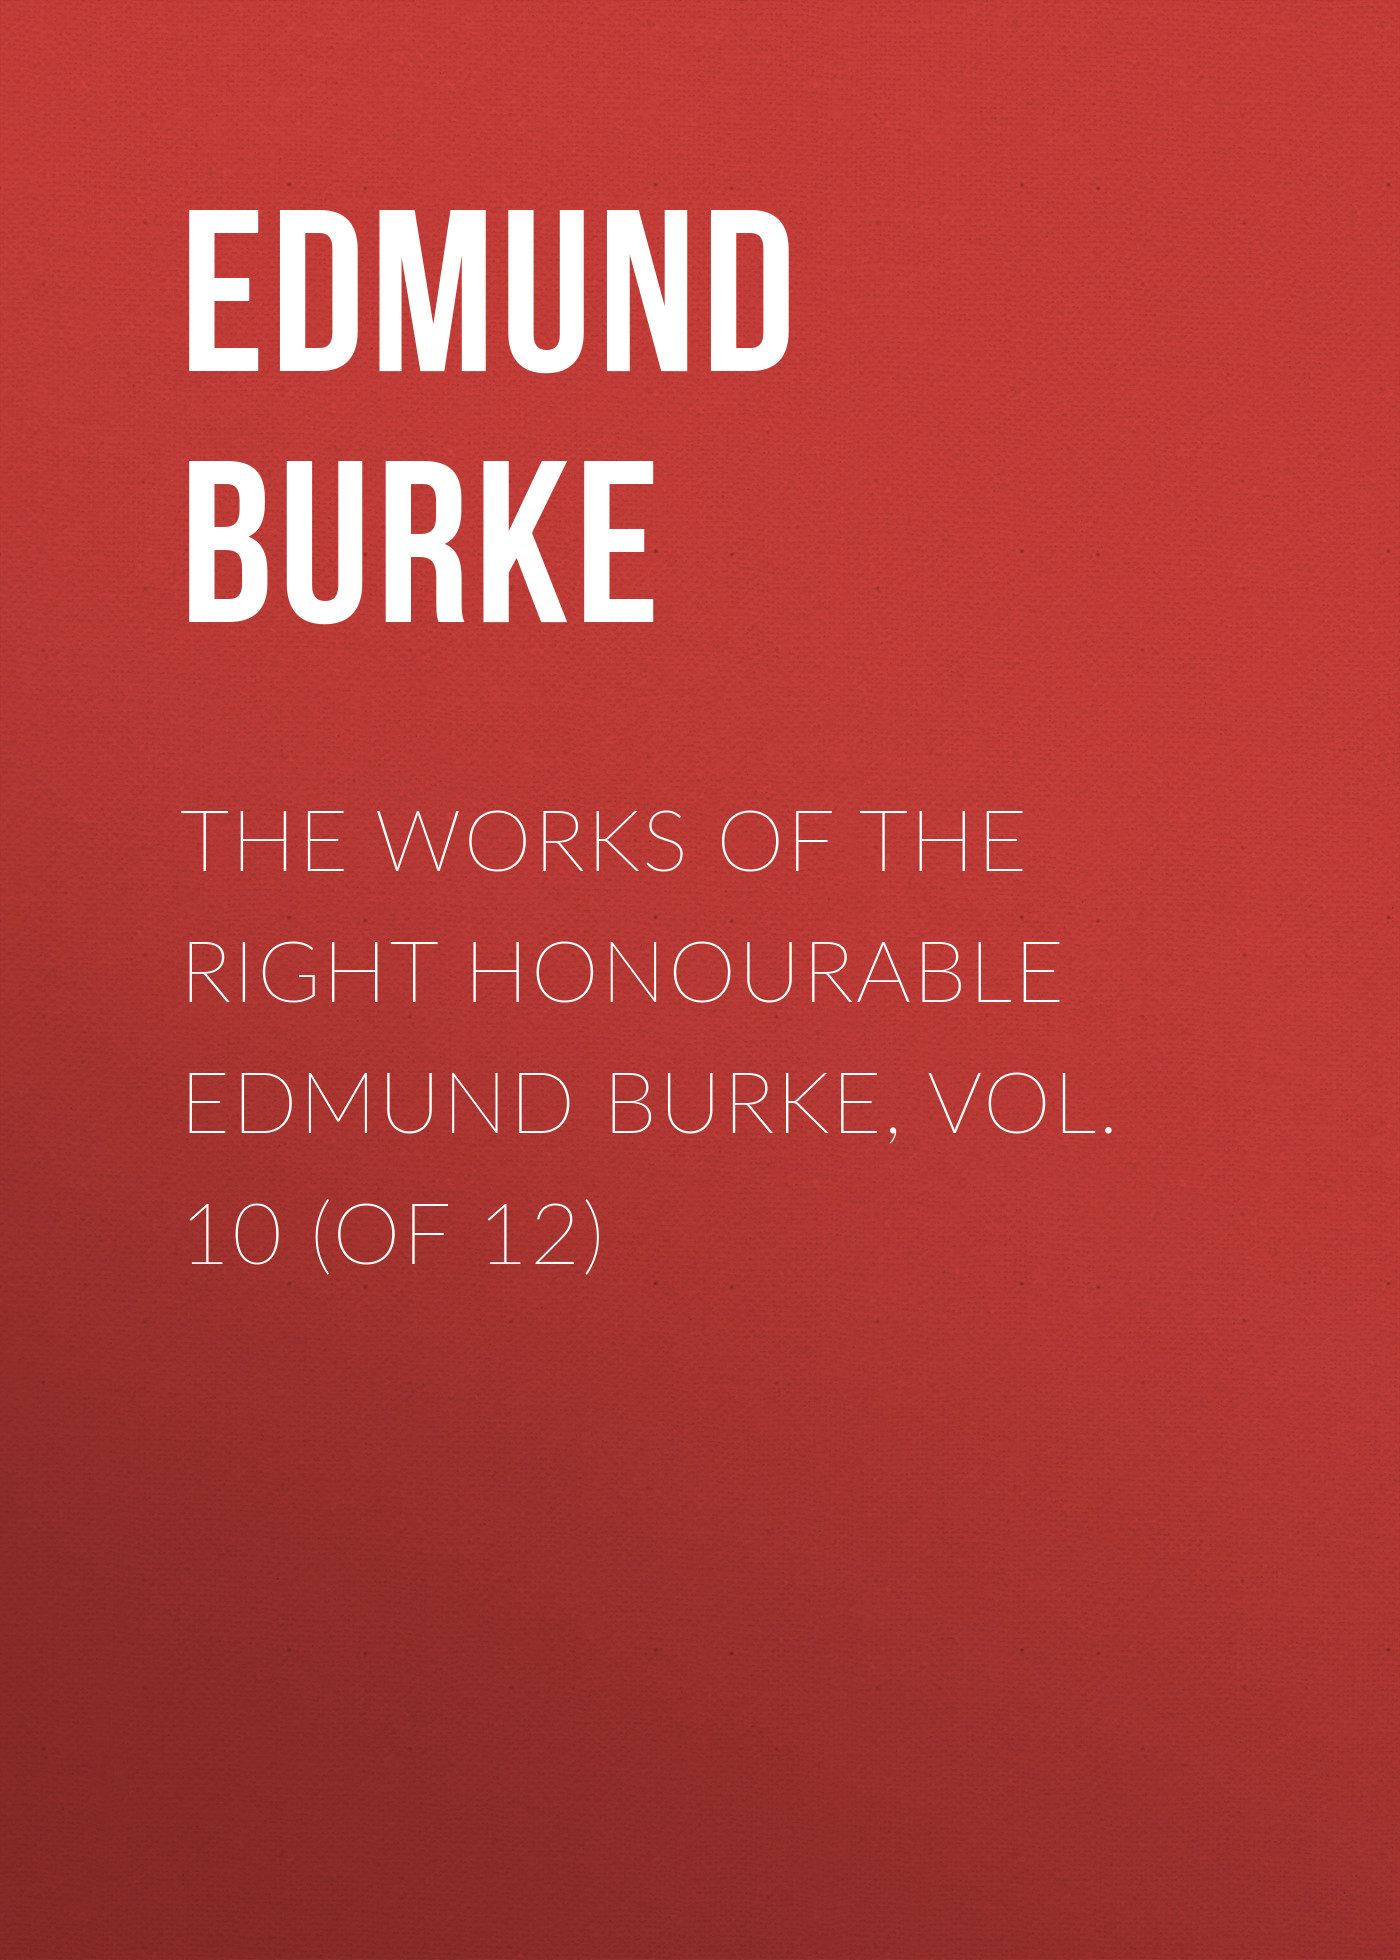 Edmund Burke The Works of the Right Honourable Edmund Burke, Vol. 10 (of 12) edmund burke the works of the right honourable edmund burke vol 09 of 12